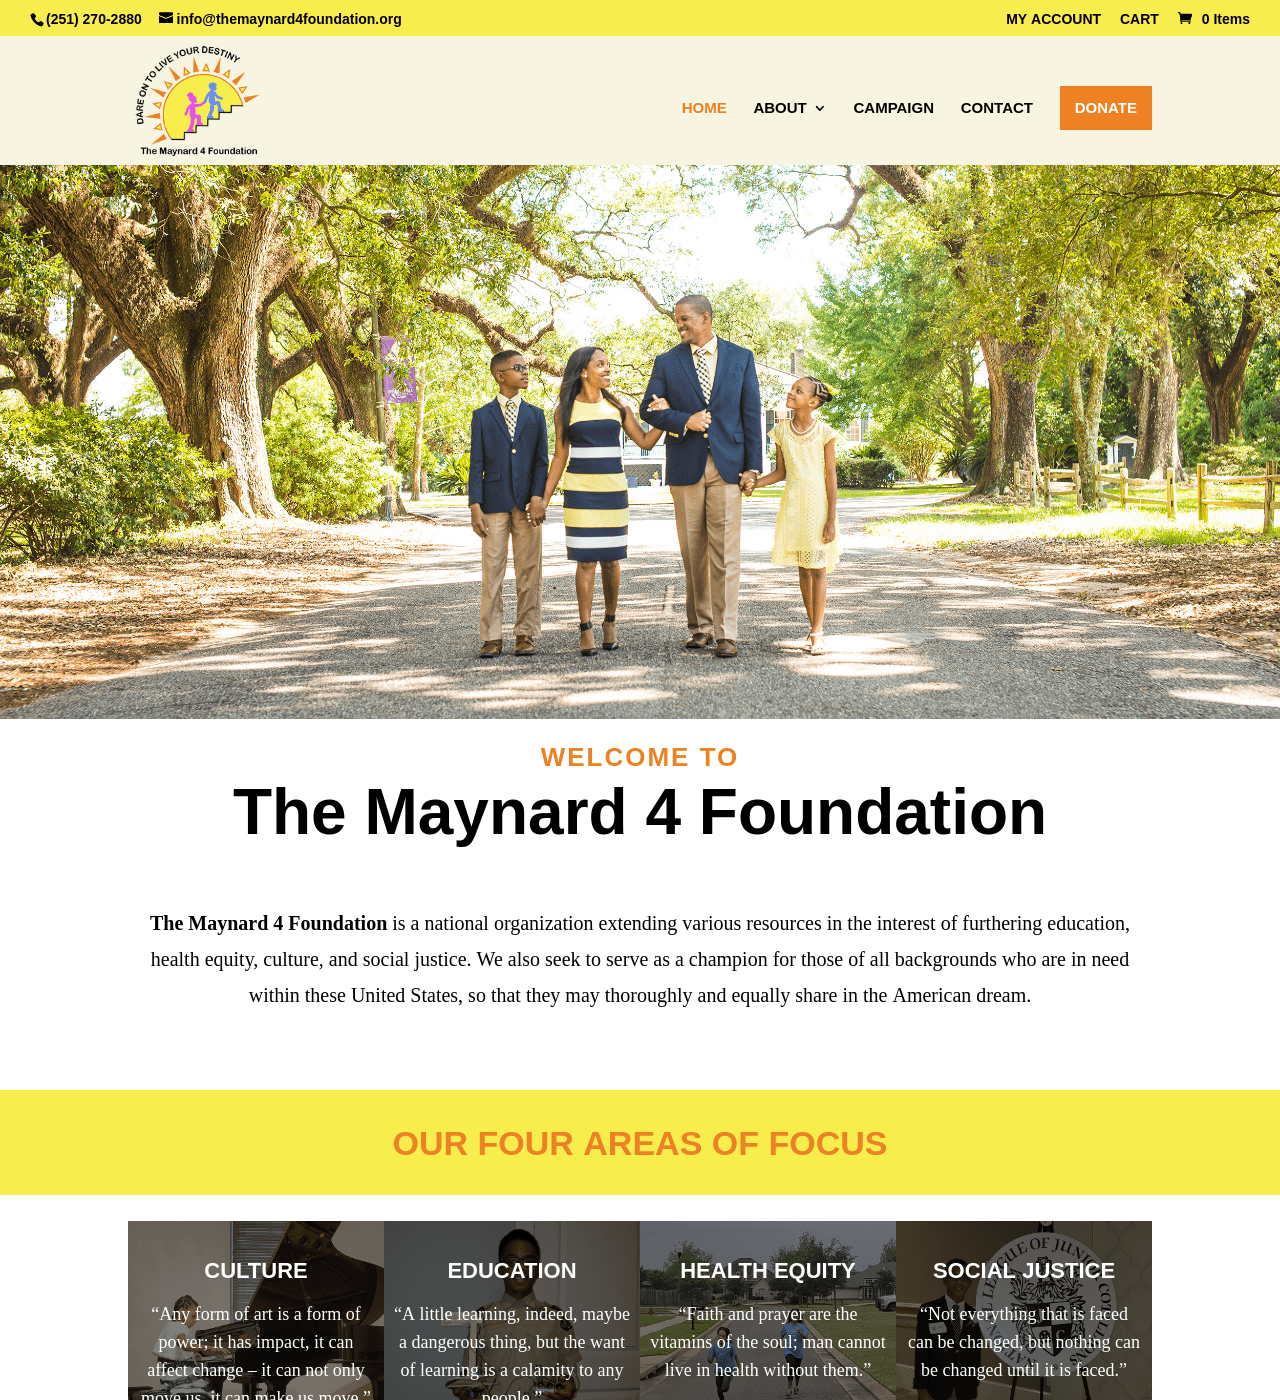 Birmingham-Web-Design-Agency-C-Kinion-Design- The-Maynard-4-Foundation